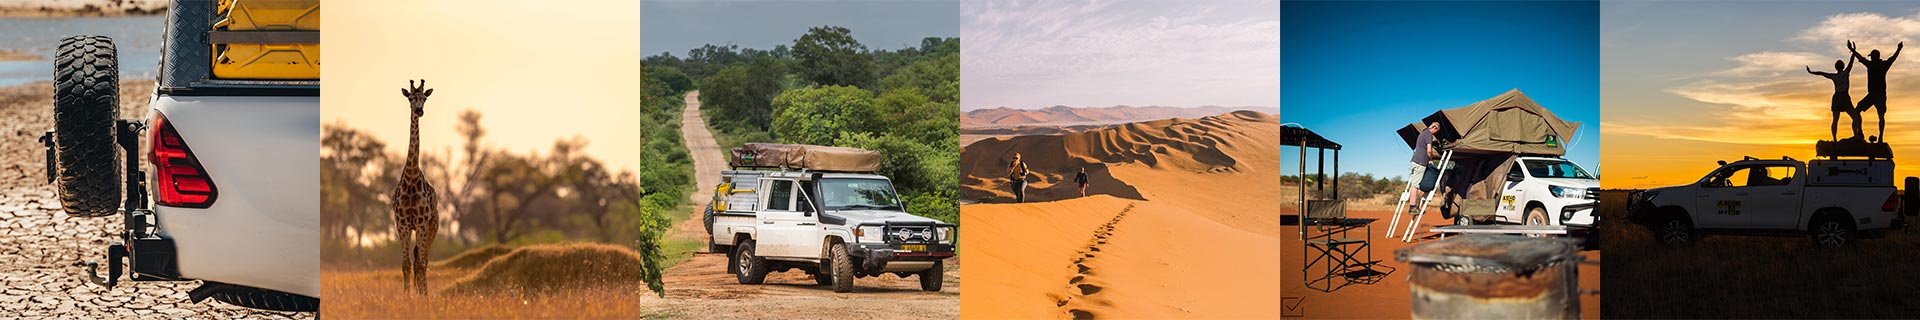 Explore-Namibia-Events-Footer